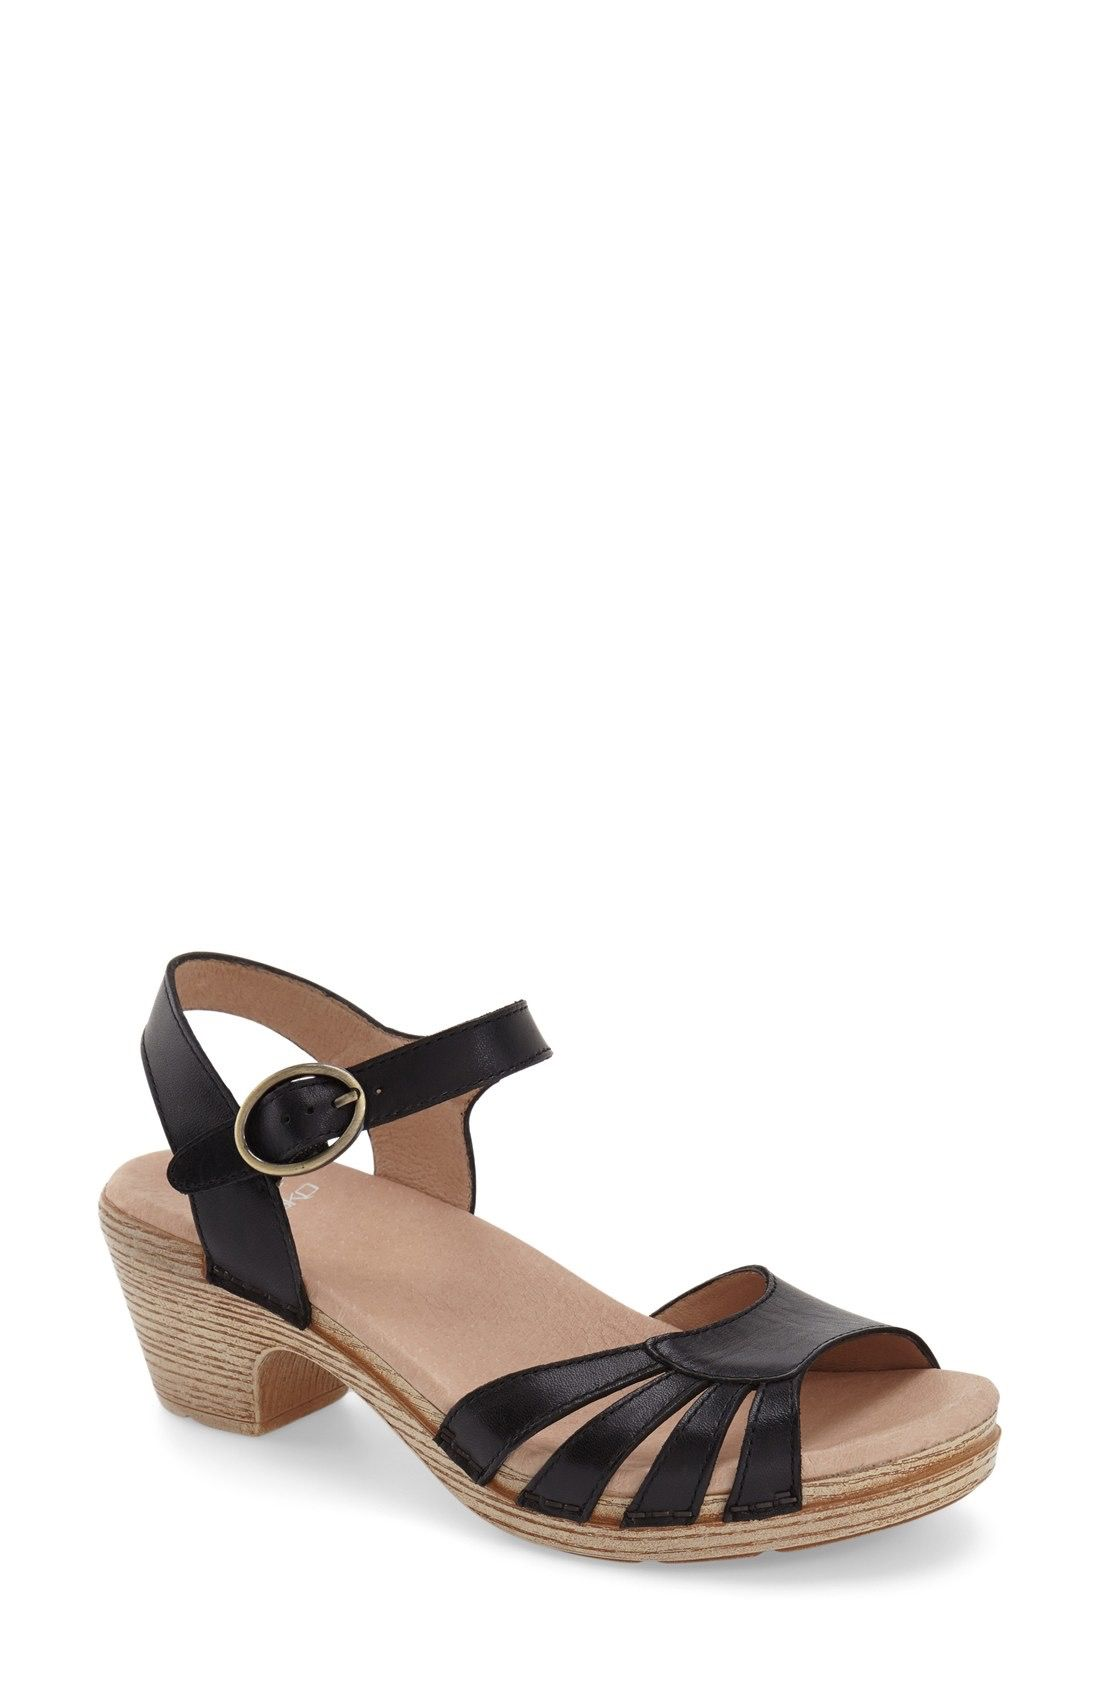 be247dc0cdcc Dansko  Marlow  Sandal (Women) available at  Nordstrom